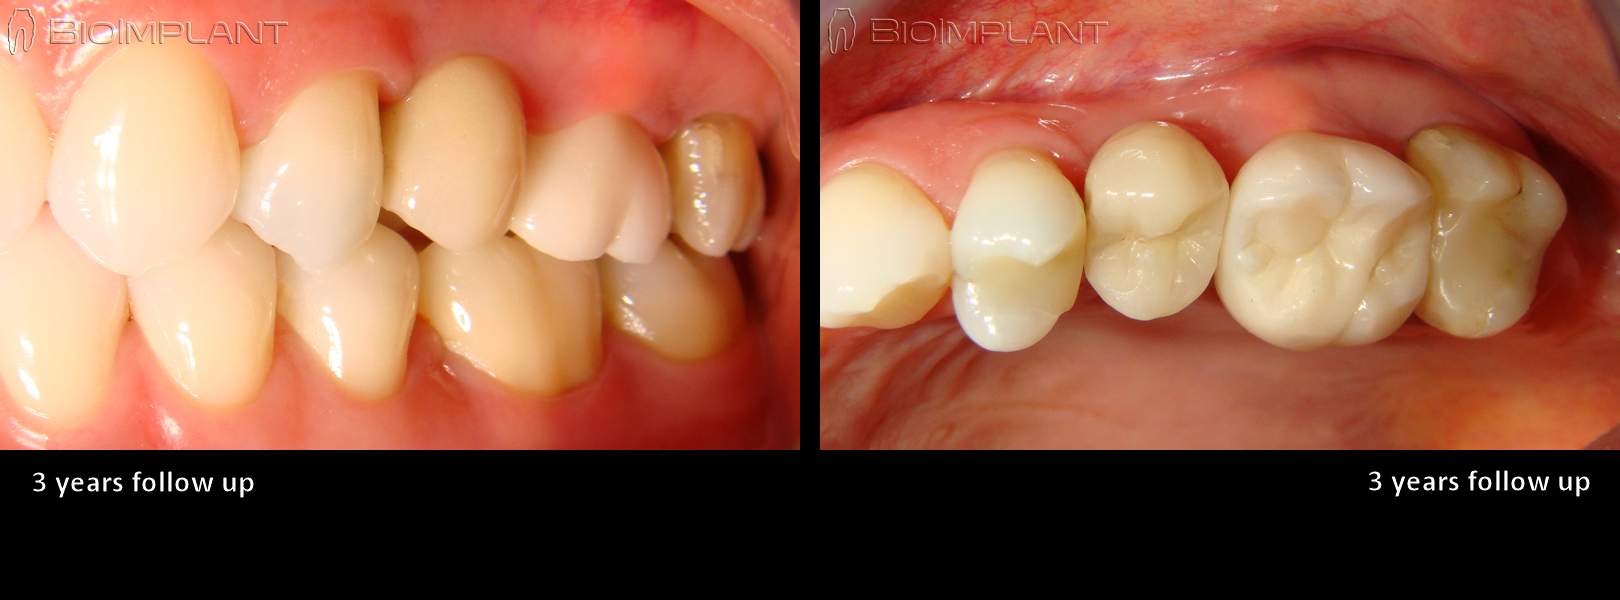 5 ceramic crown on ceramic implant keramik implantat immediate implant